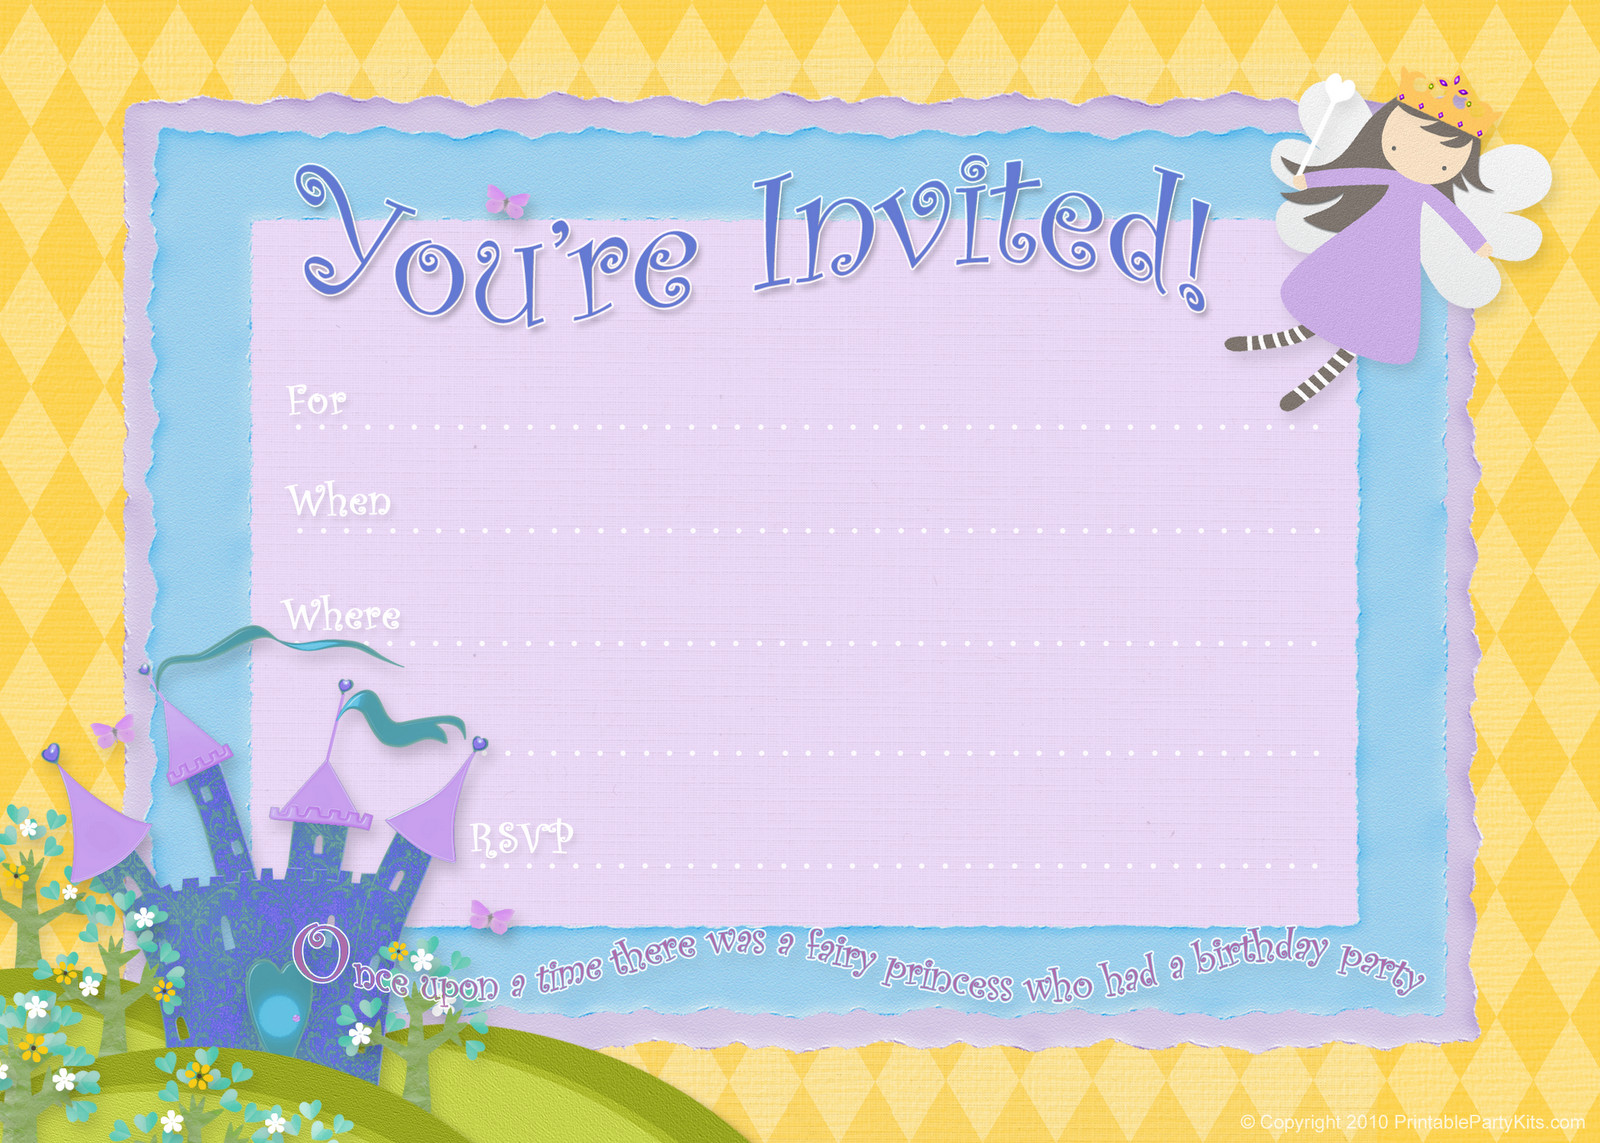 Best ideas about Birthday Party Invitations Free . Save or Pin Free Birthday Party Invitations – Bagvania FREE Printable Now.